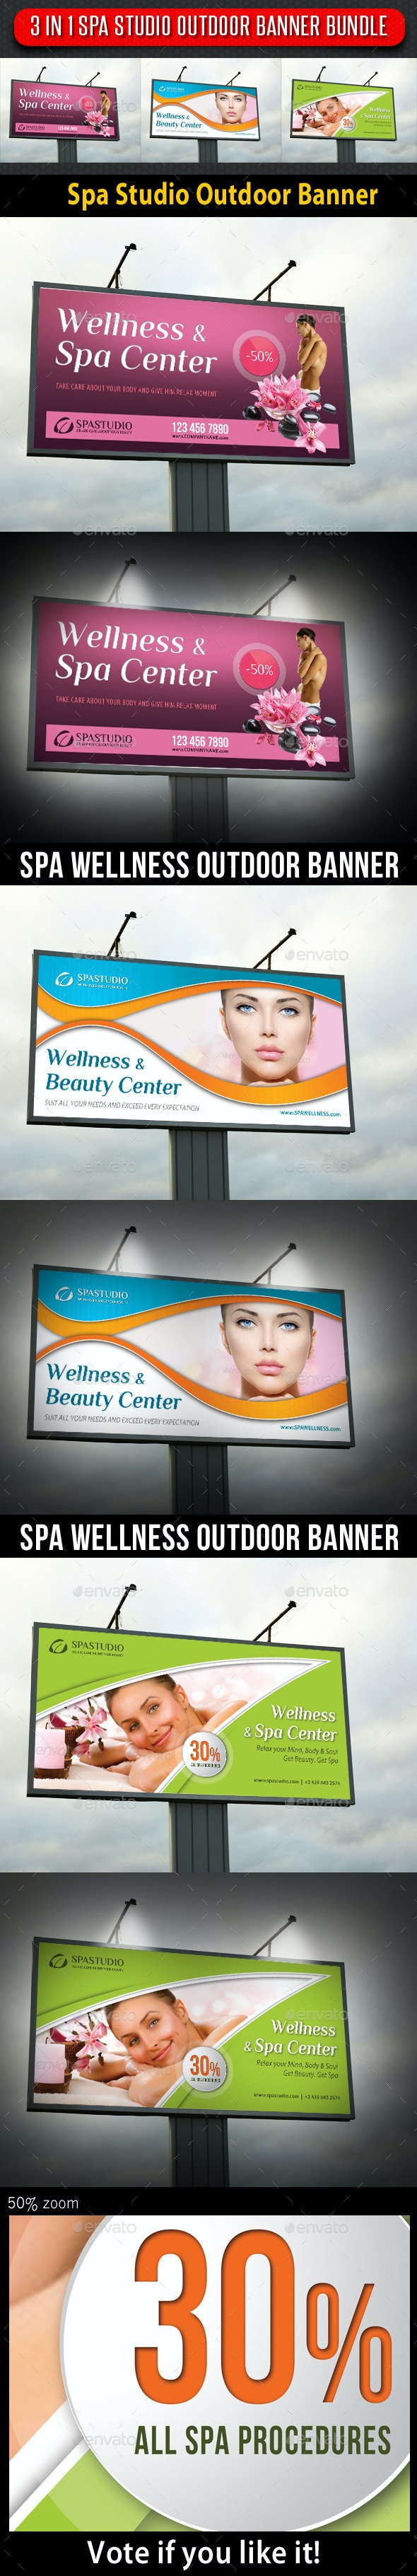 3 in 1 Spa Studio Outdoor Banner Bundle - Signage Print Templates